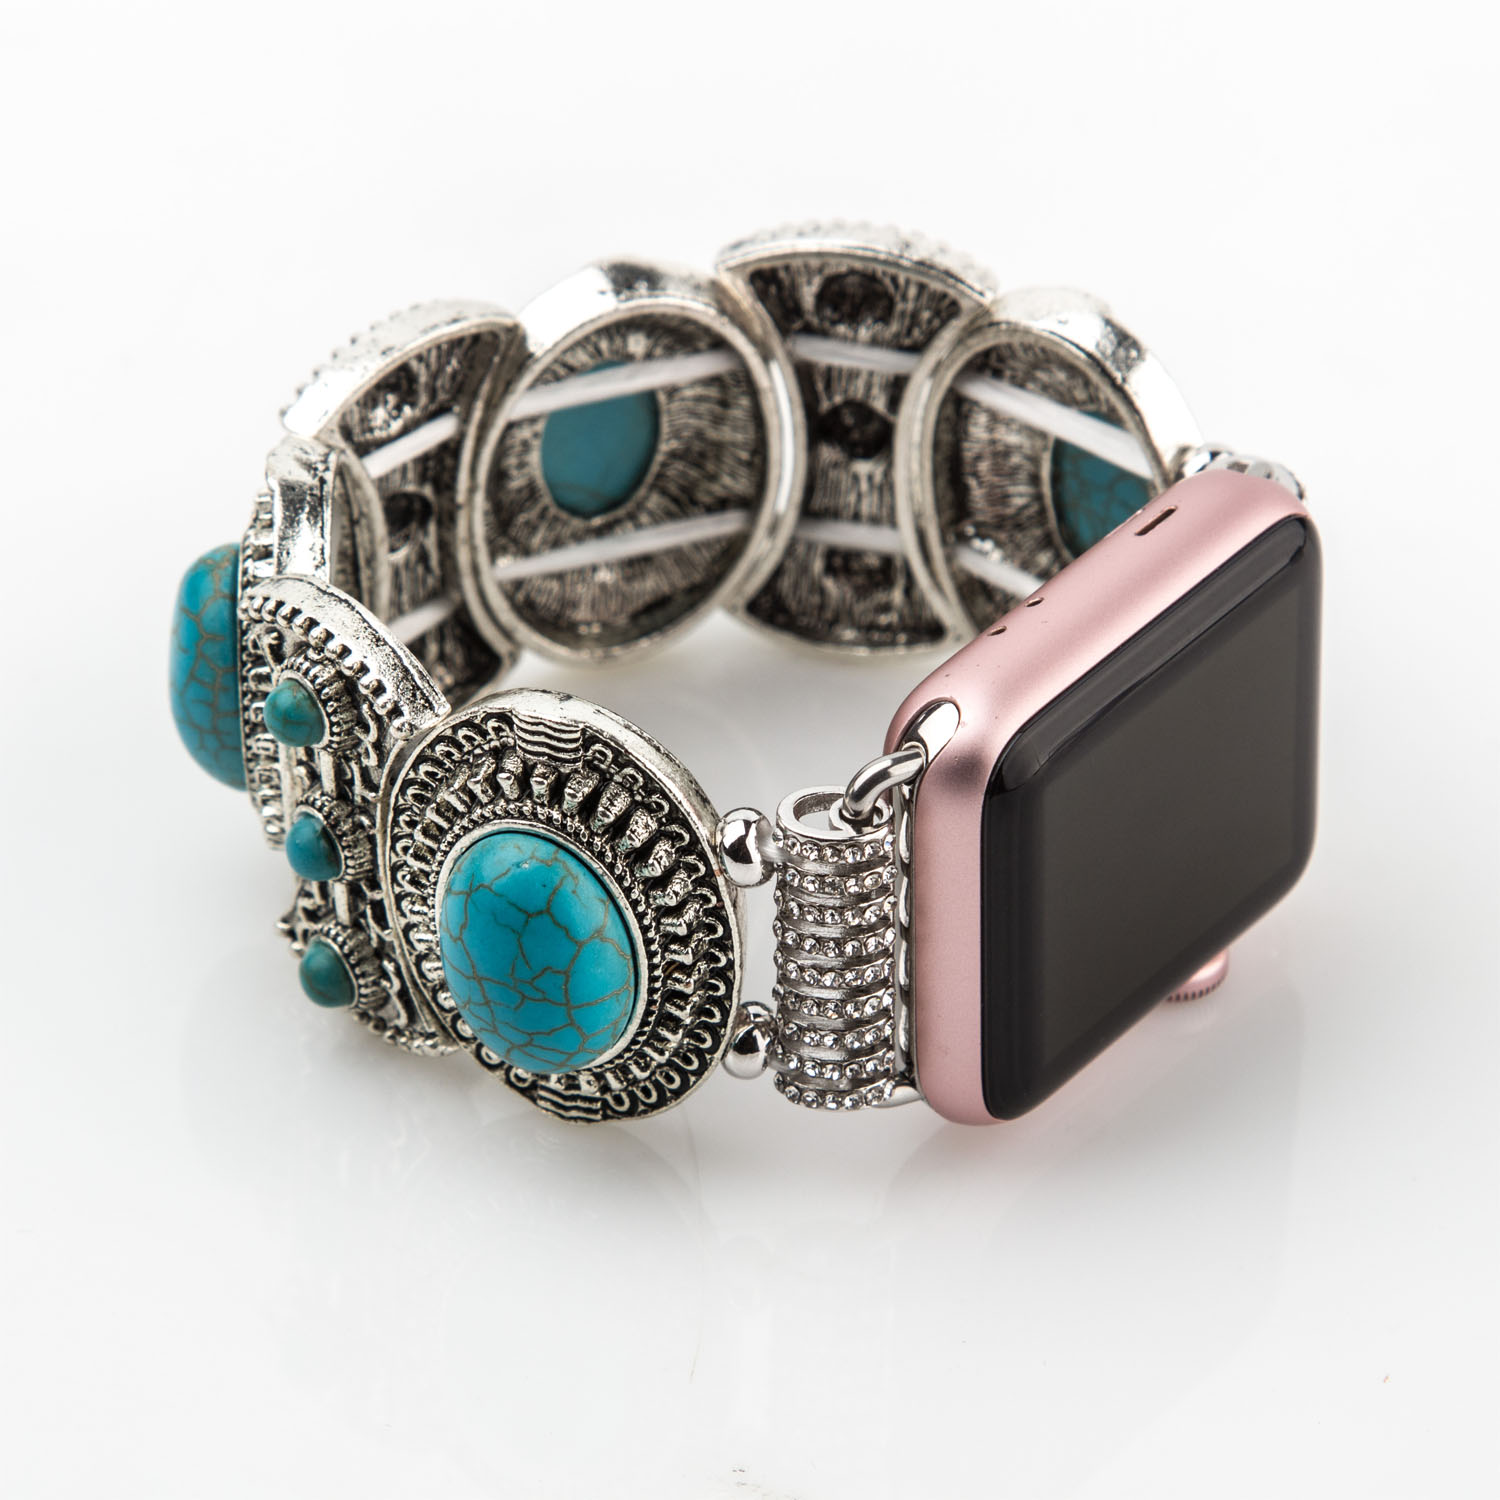 bracelet apple serie 3 retro turquoise stretch bracelet for apple series 3 1249